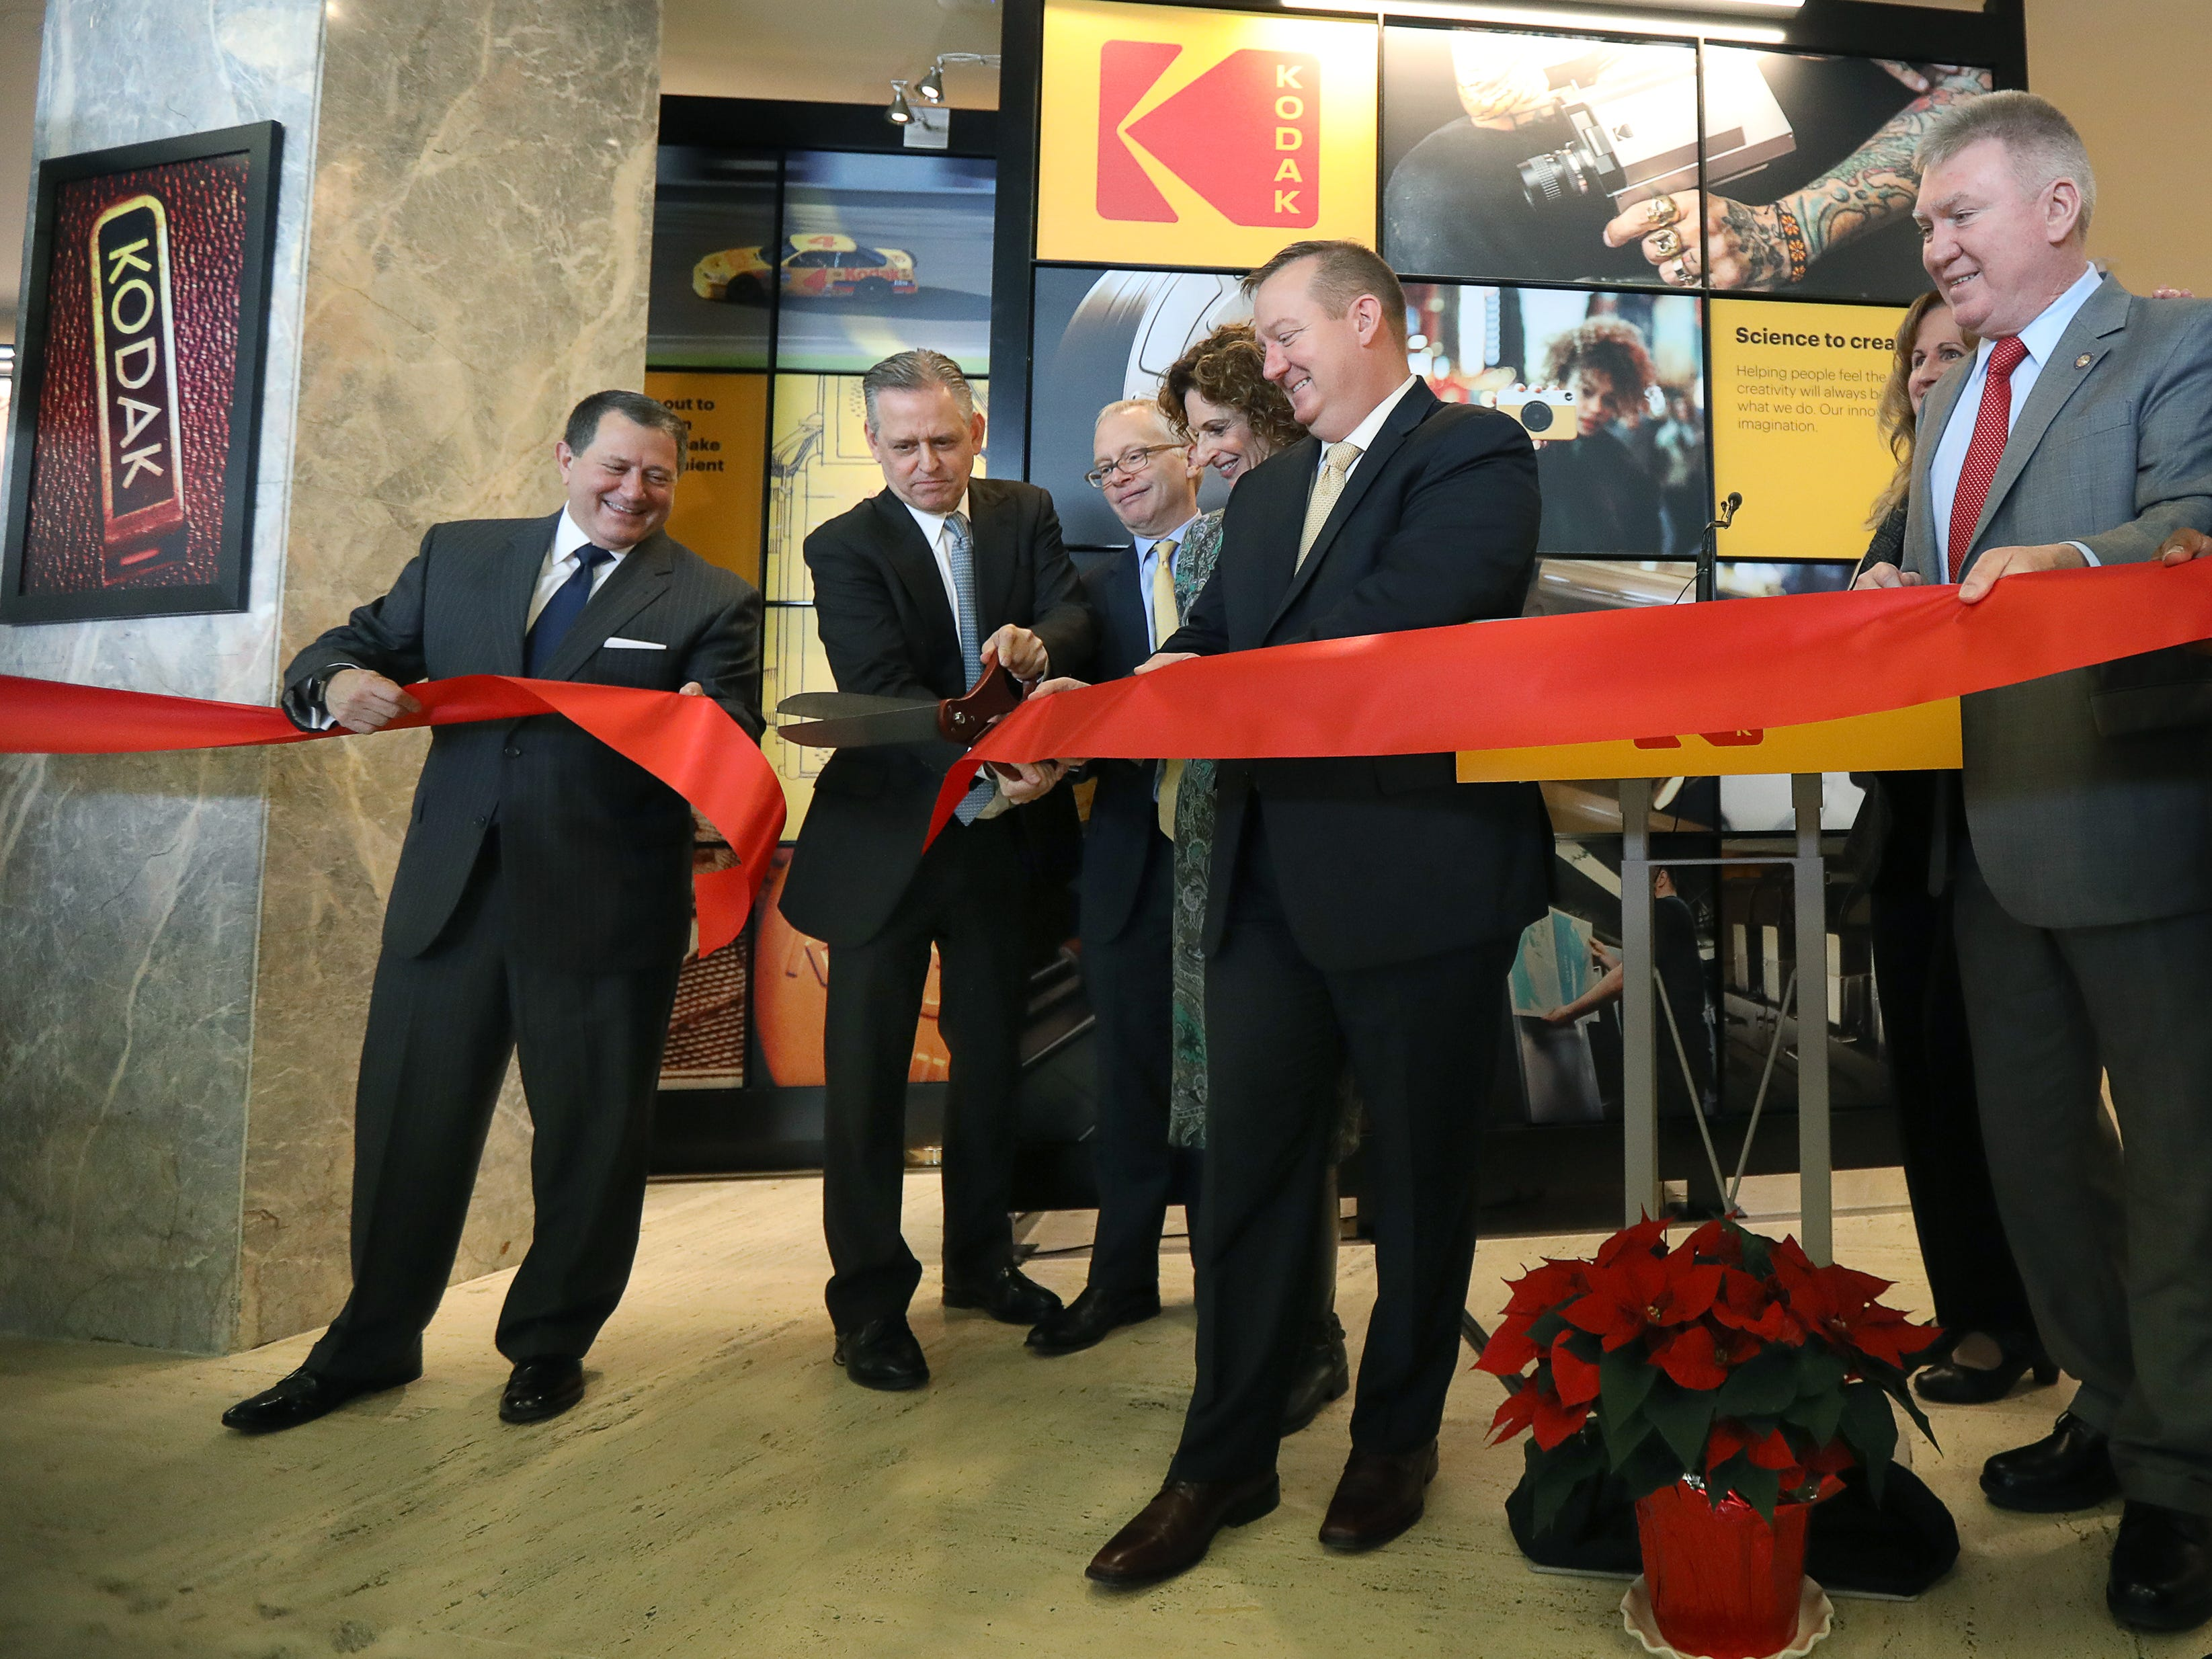 Ribbon cutting with CEO of Kodak Jeff Clarke holding the scissors during the Kodak Visitor Center Grand Opening.